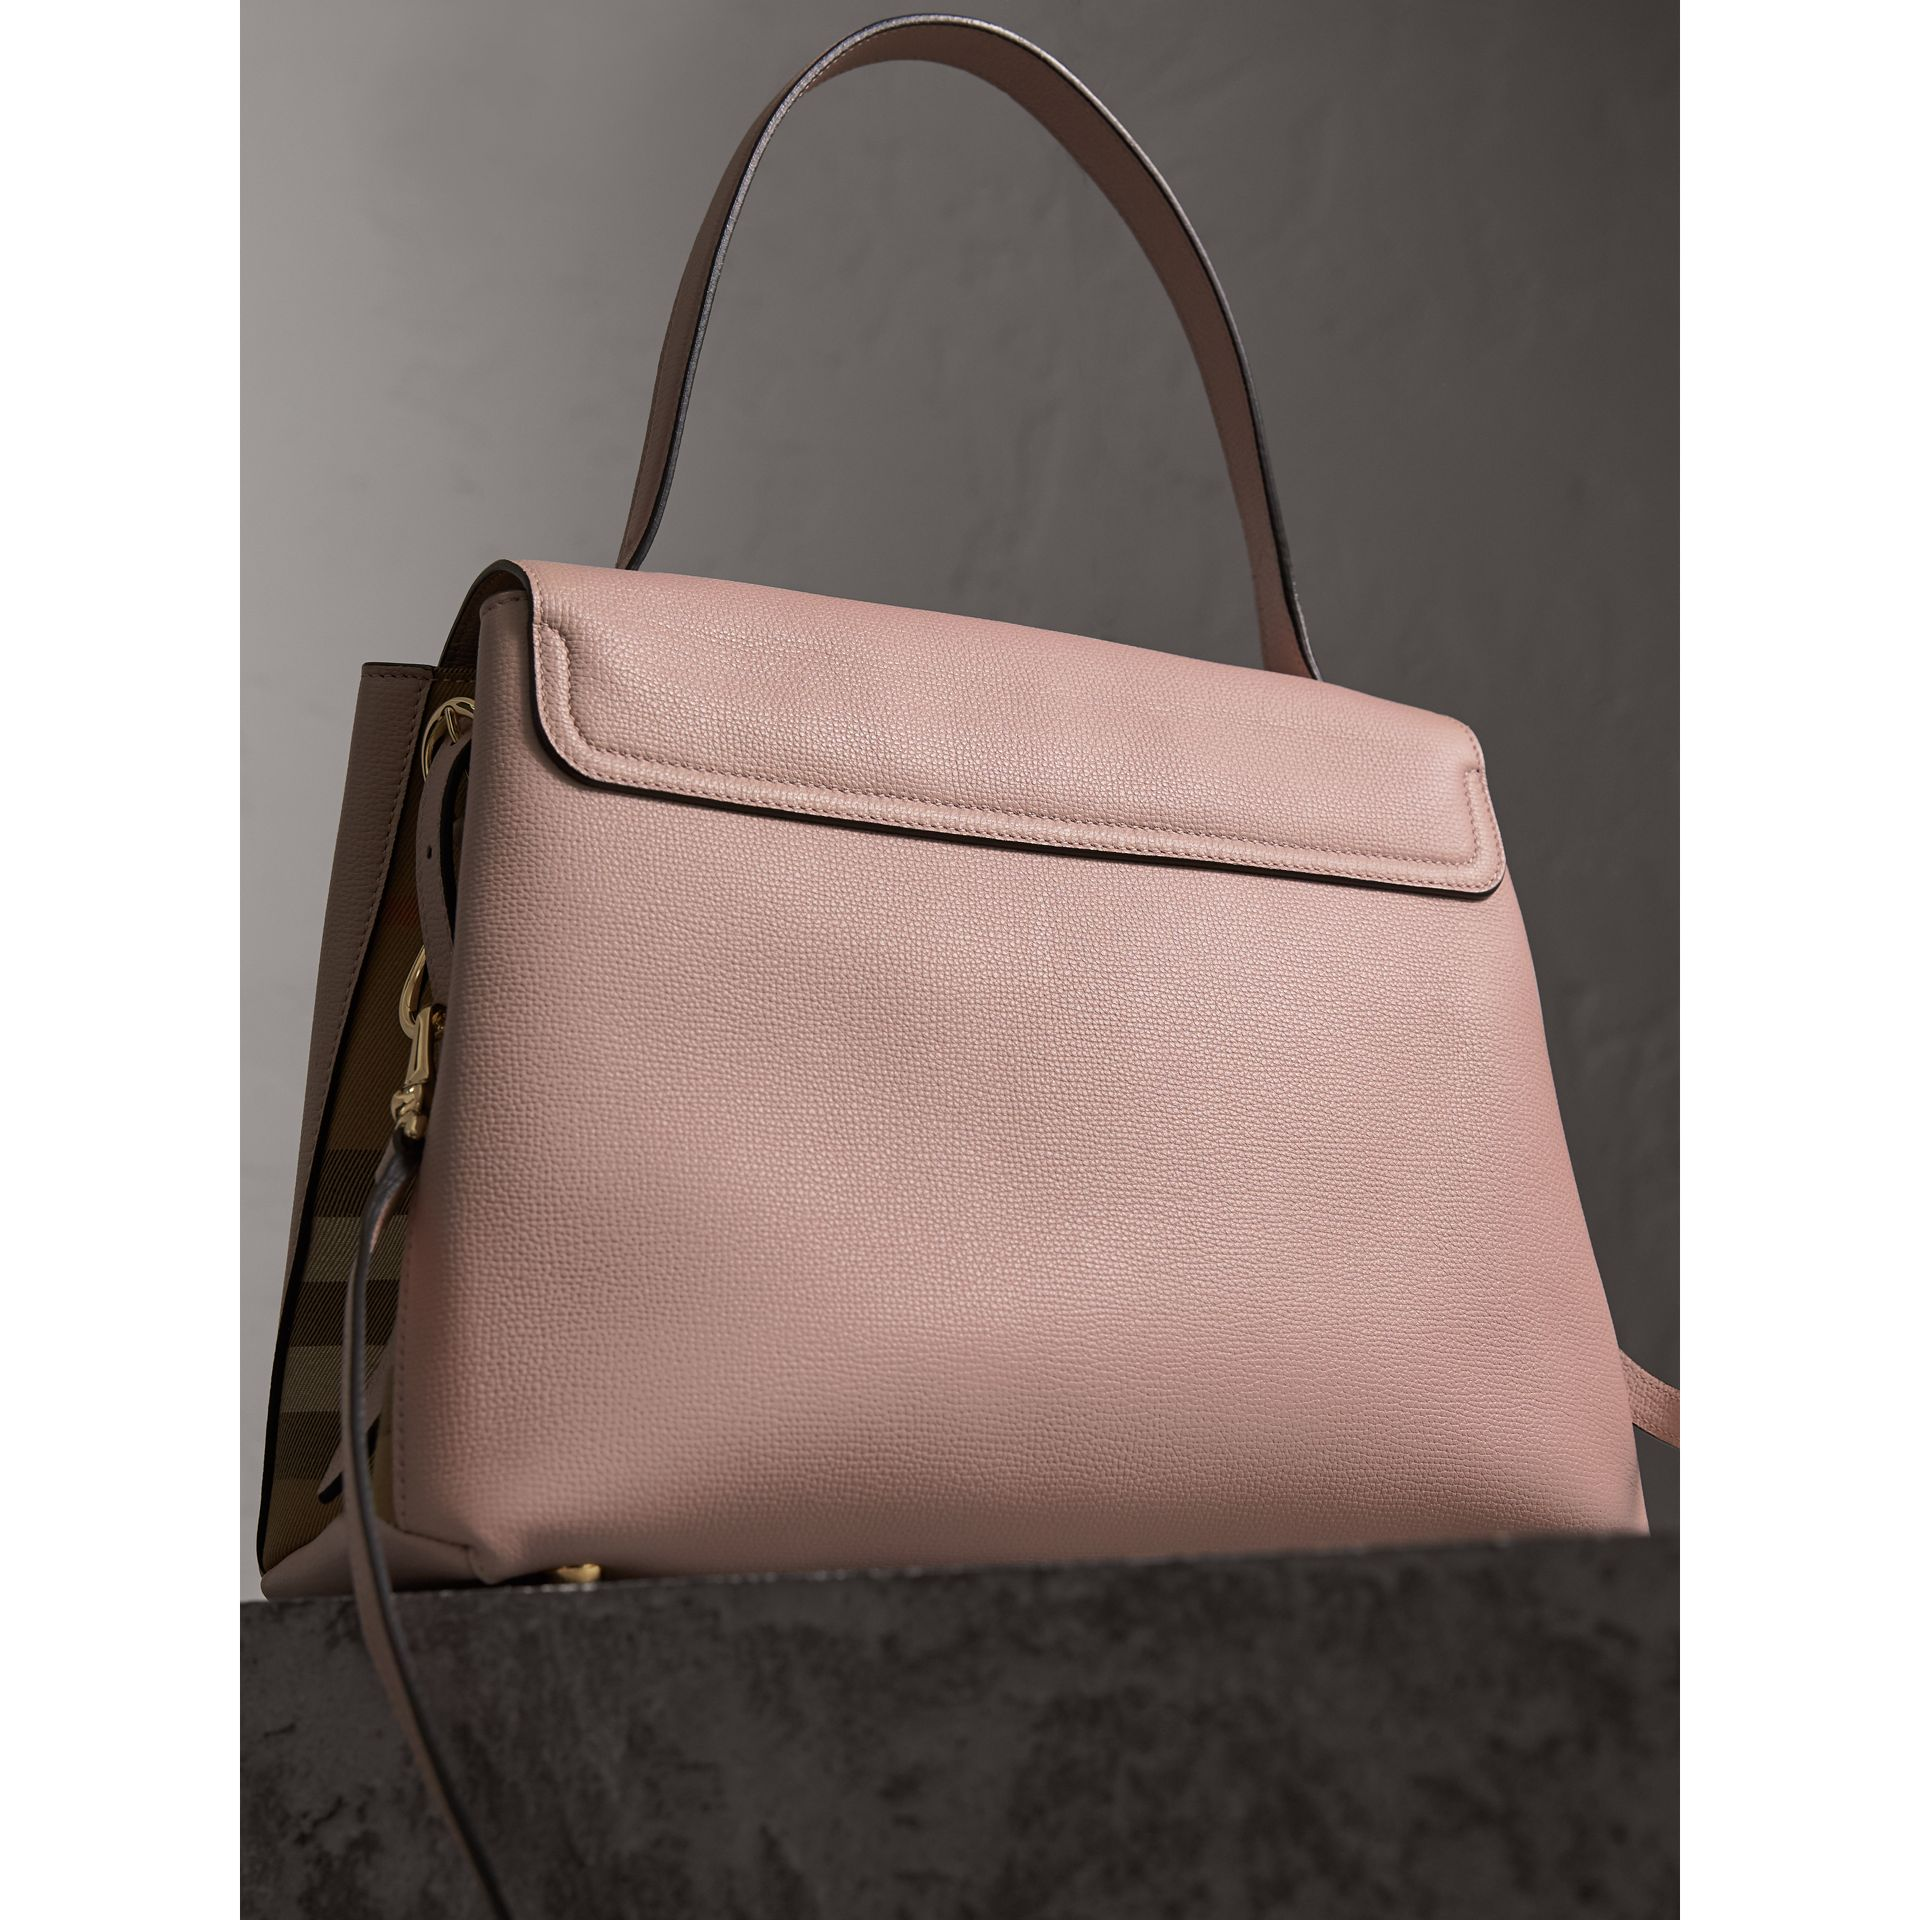 Medium Grainy Leather and House Check Tote Bag in Pale Orchid - Women | Burberry Australia - gallery image 4